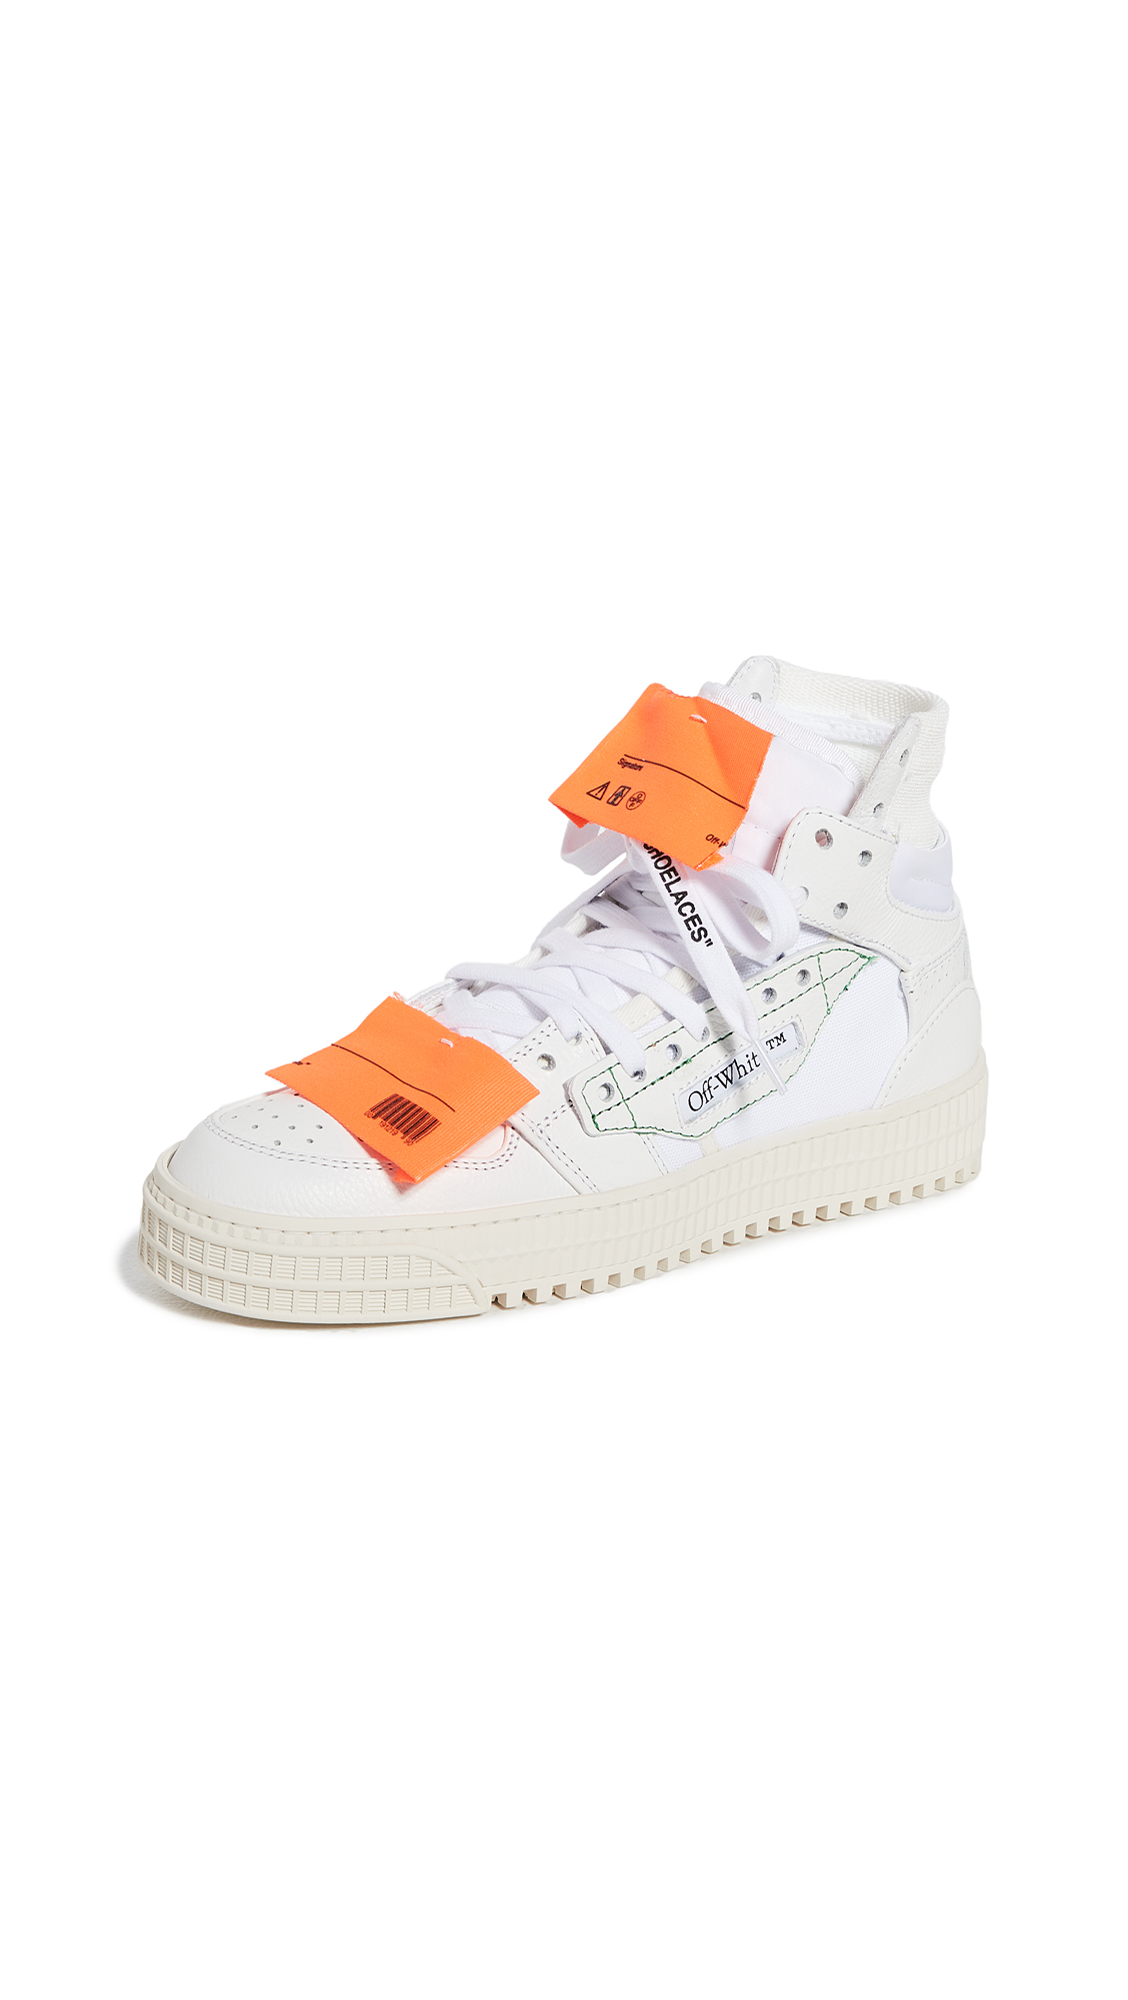 Off-White 3.0 Court Sneakers